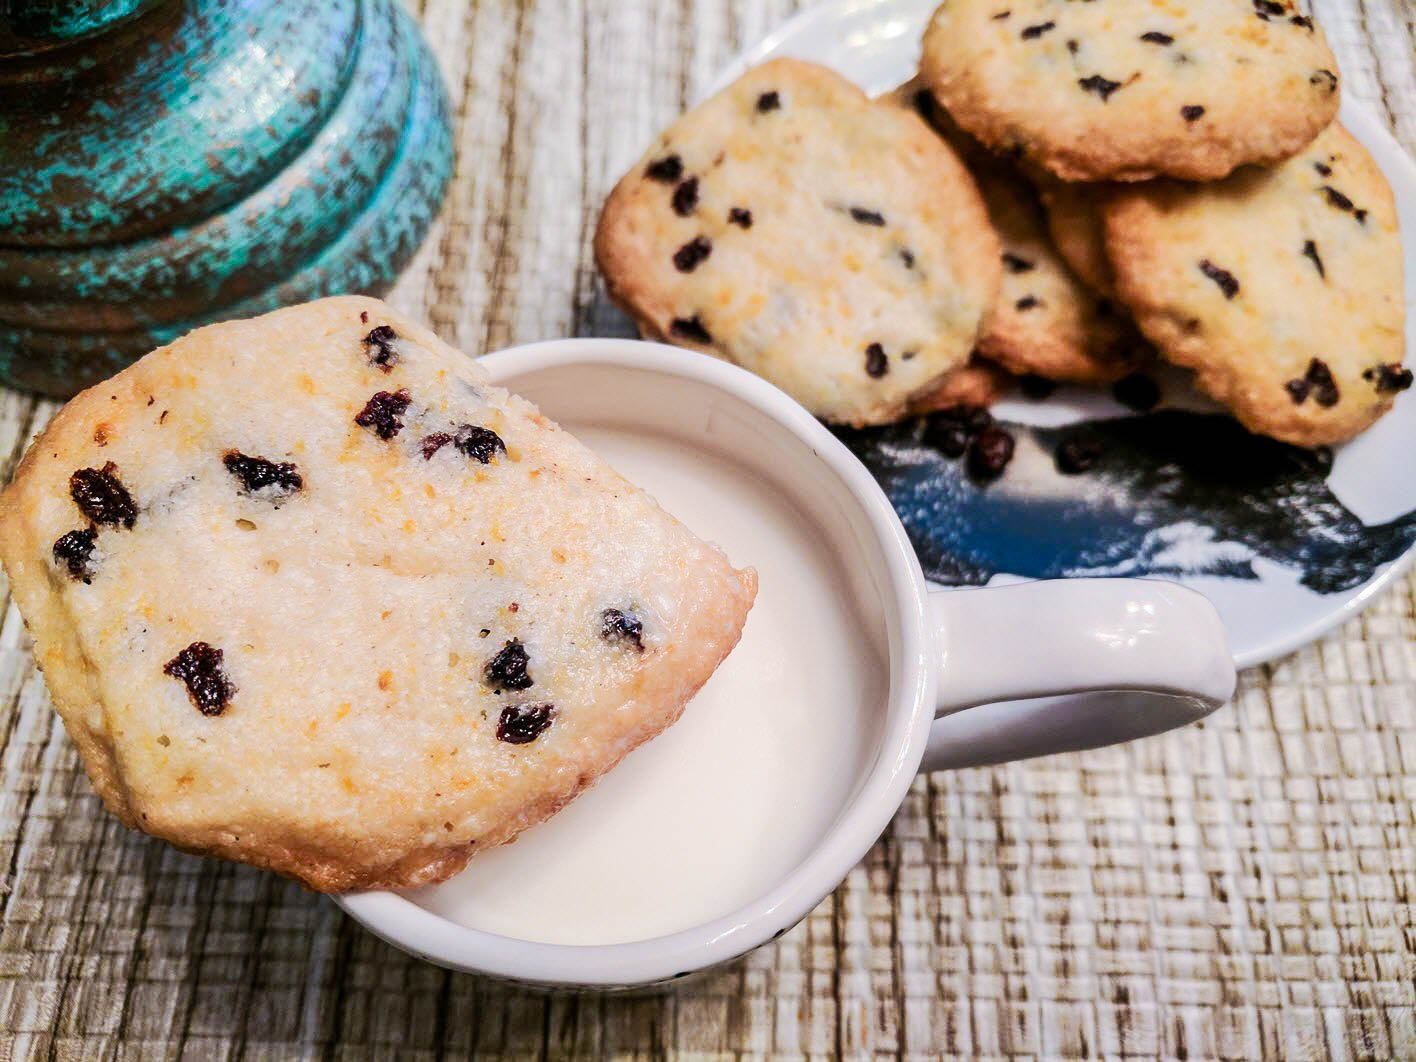 Currant And Orange Shortbread Cookie